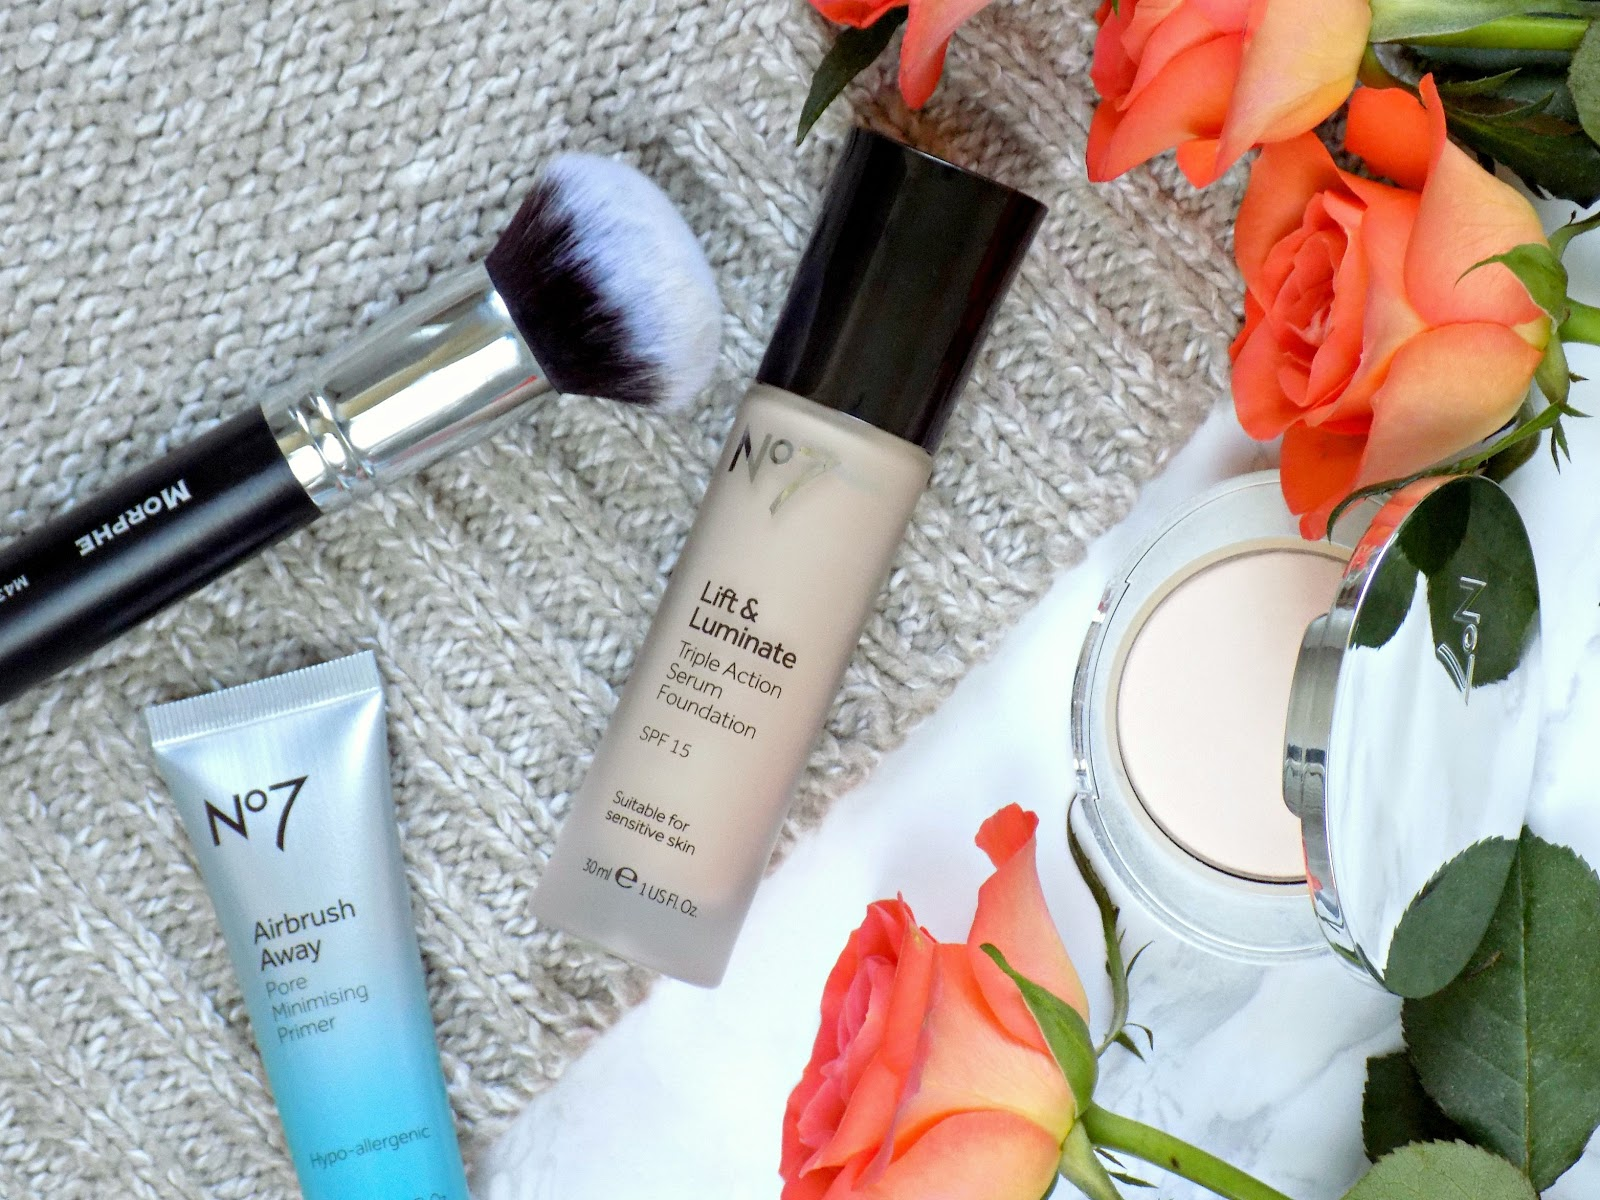 No7 Lift & Luminate Triple Action Serum Foundation